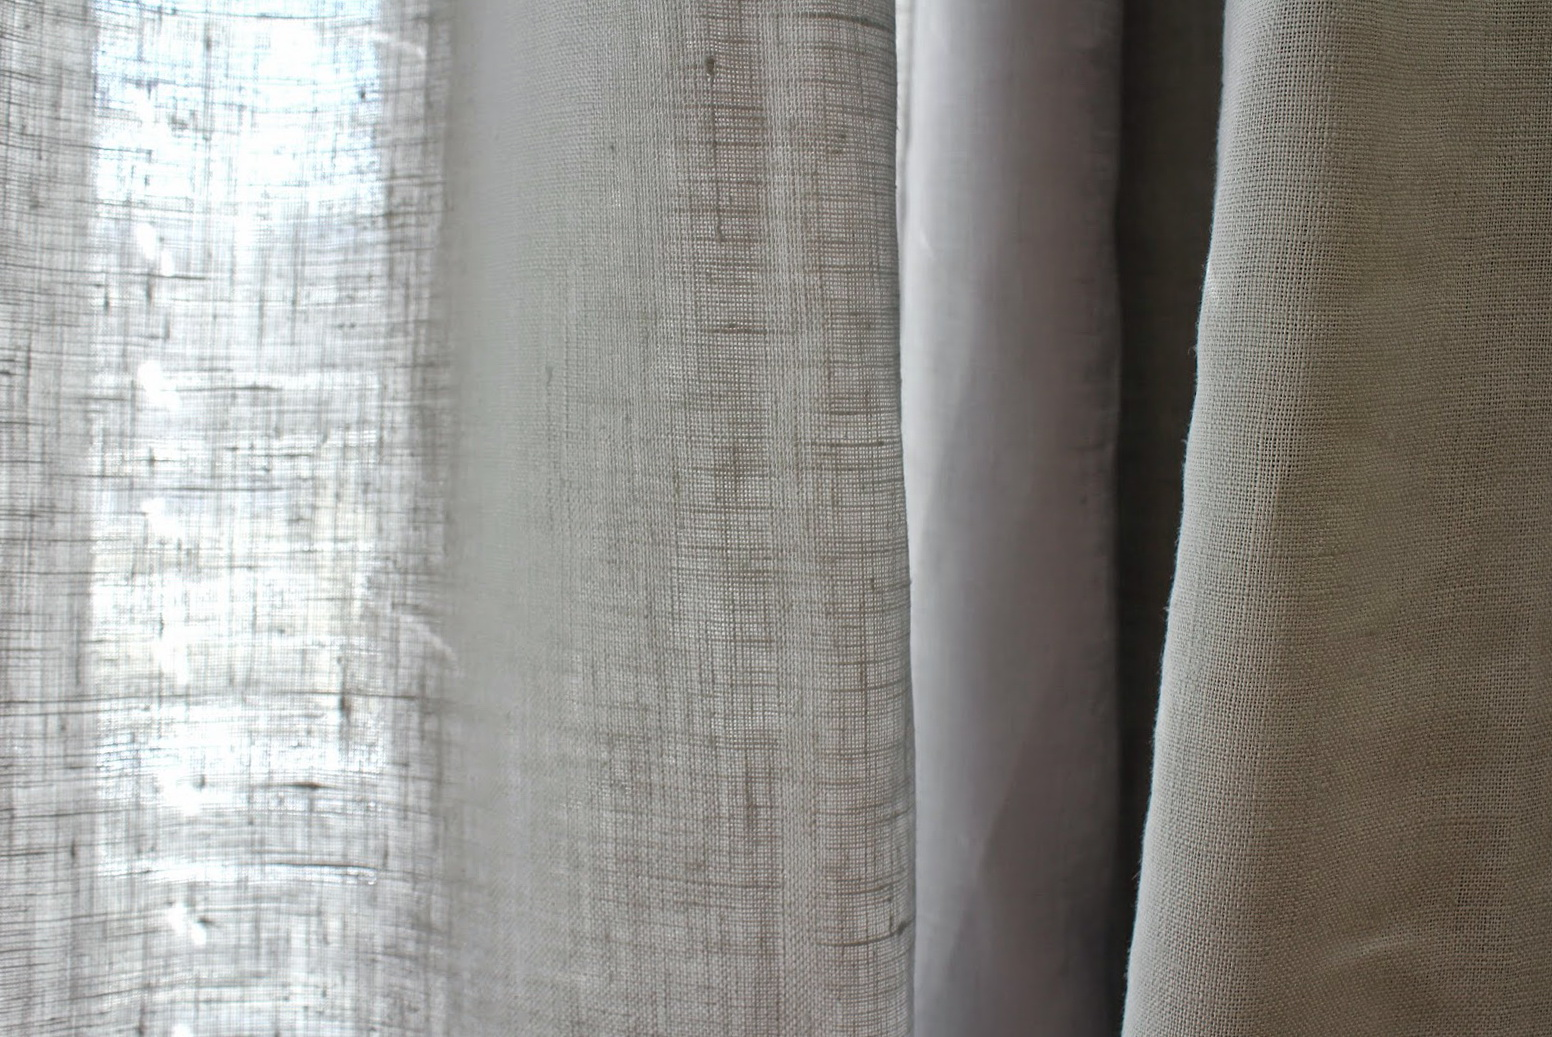 Ikea Linen Curtains Australia Home Design Ideas